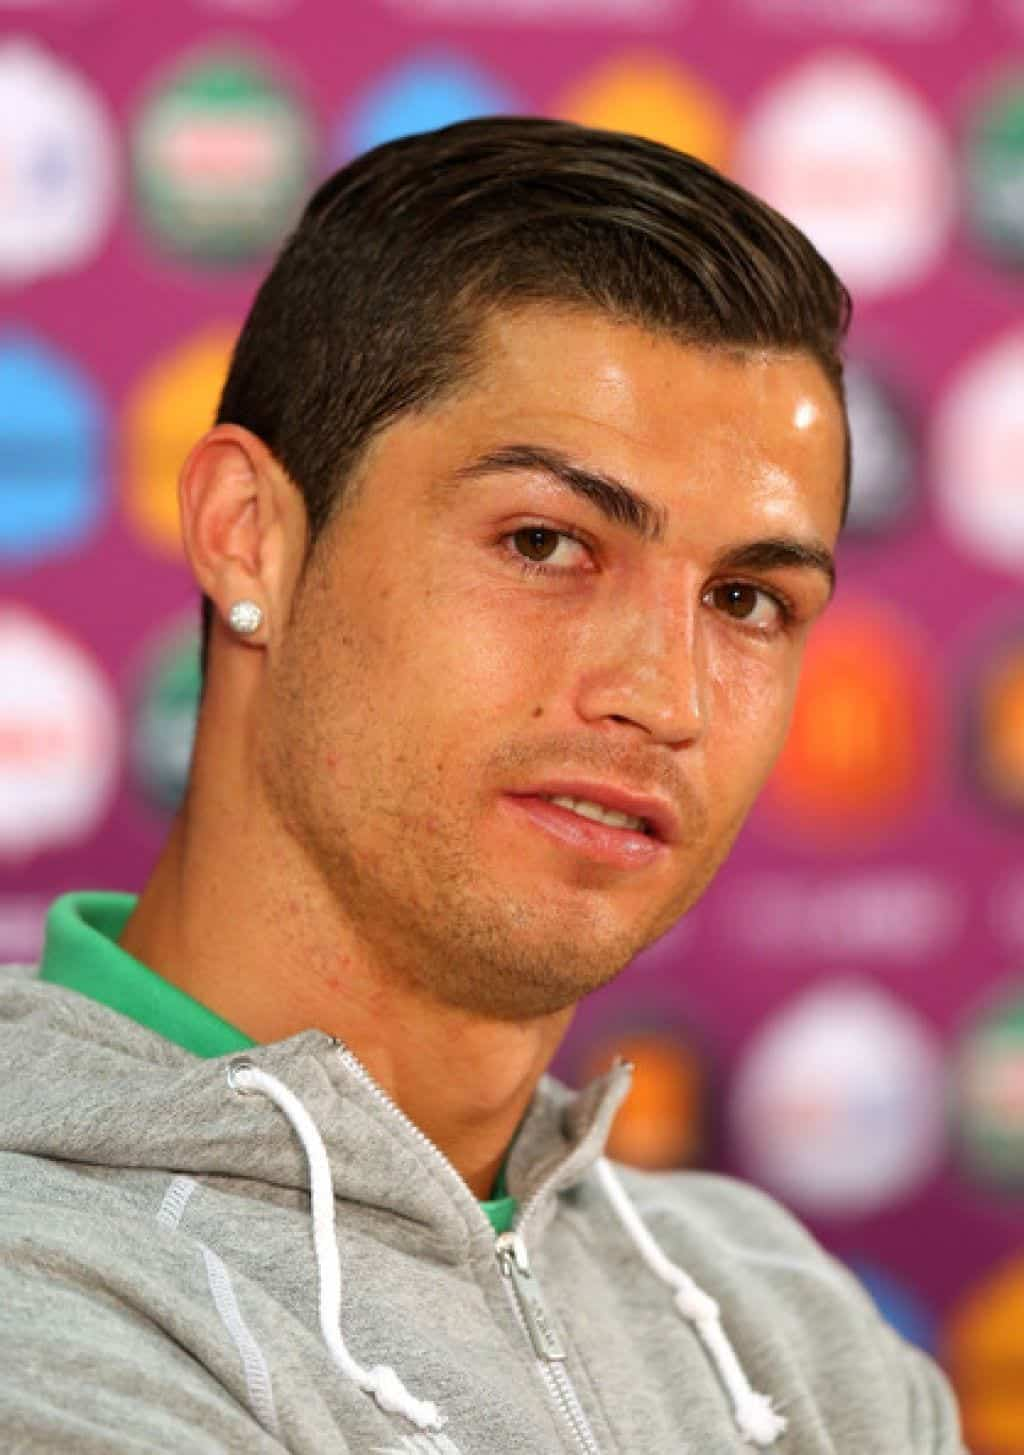 cristiano ronaldo hairstyles20 most popular hair cuts pics